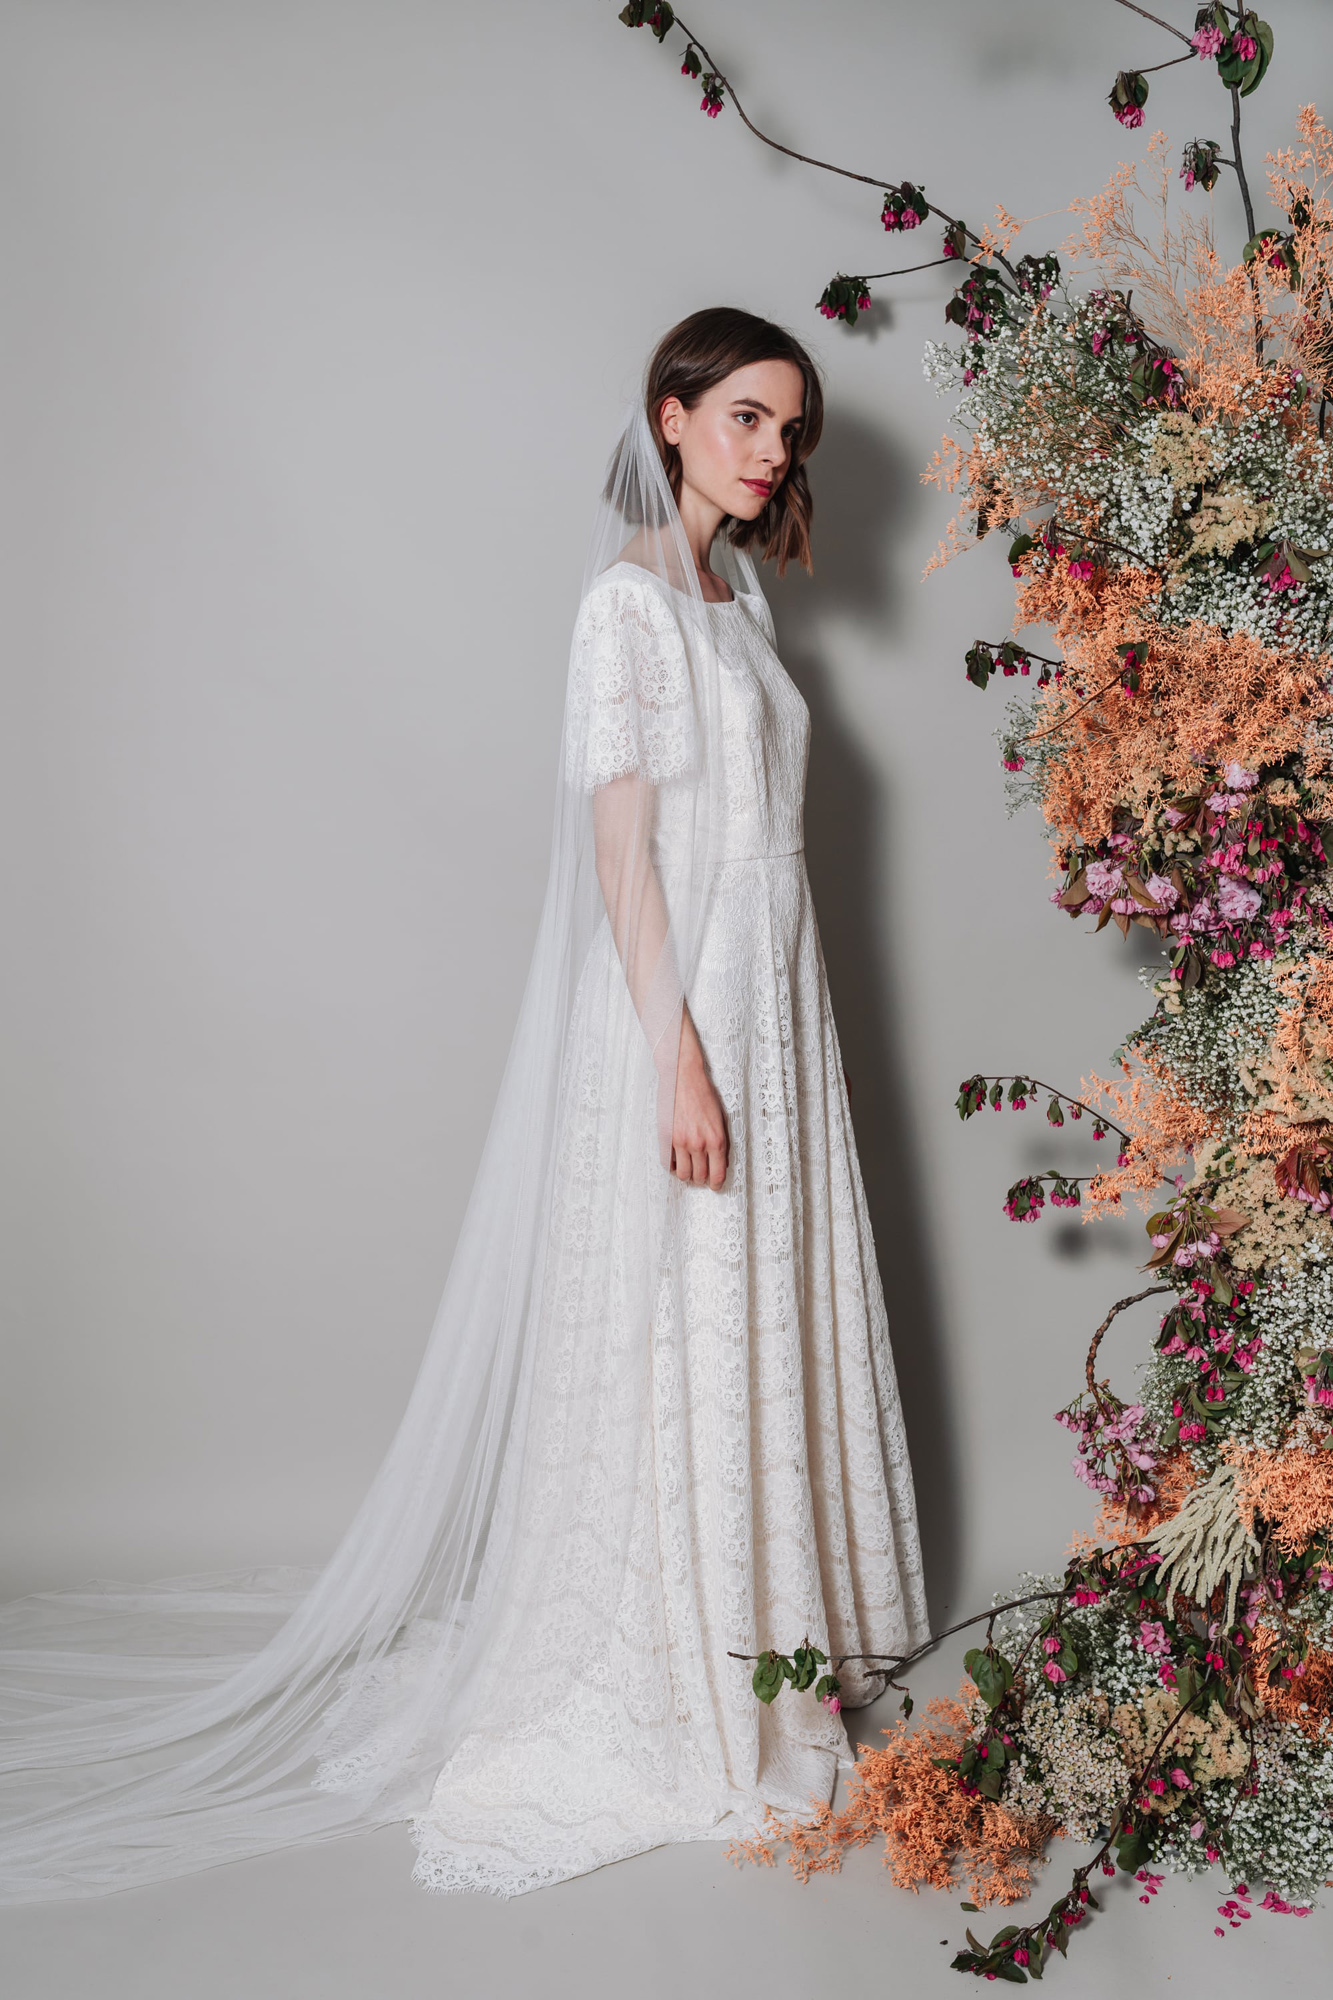 Kate-Beaumont-Sheffield-Bohemian-Dahlia-Panelled-Lace-Silk-Wedding-Gown-15.jpg